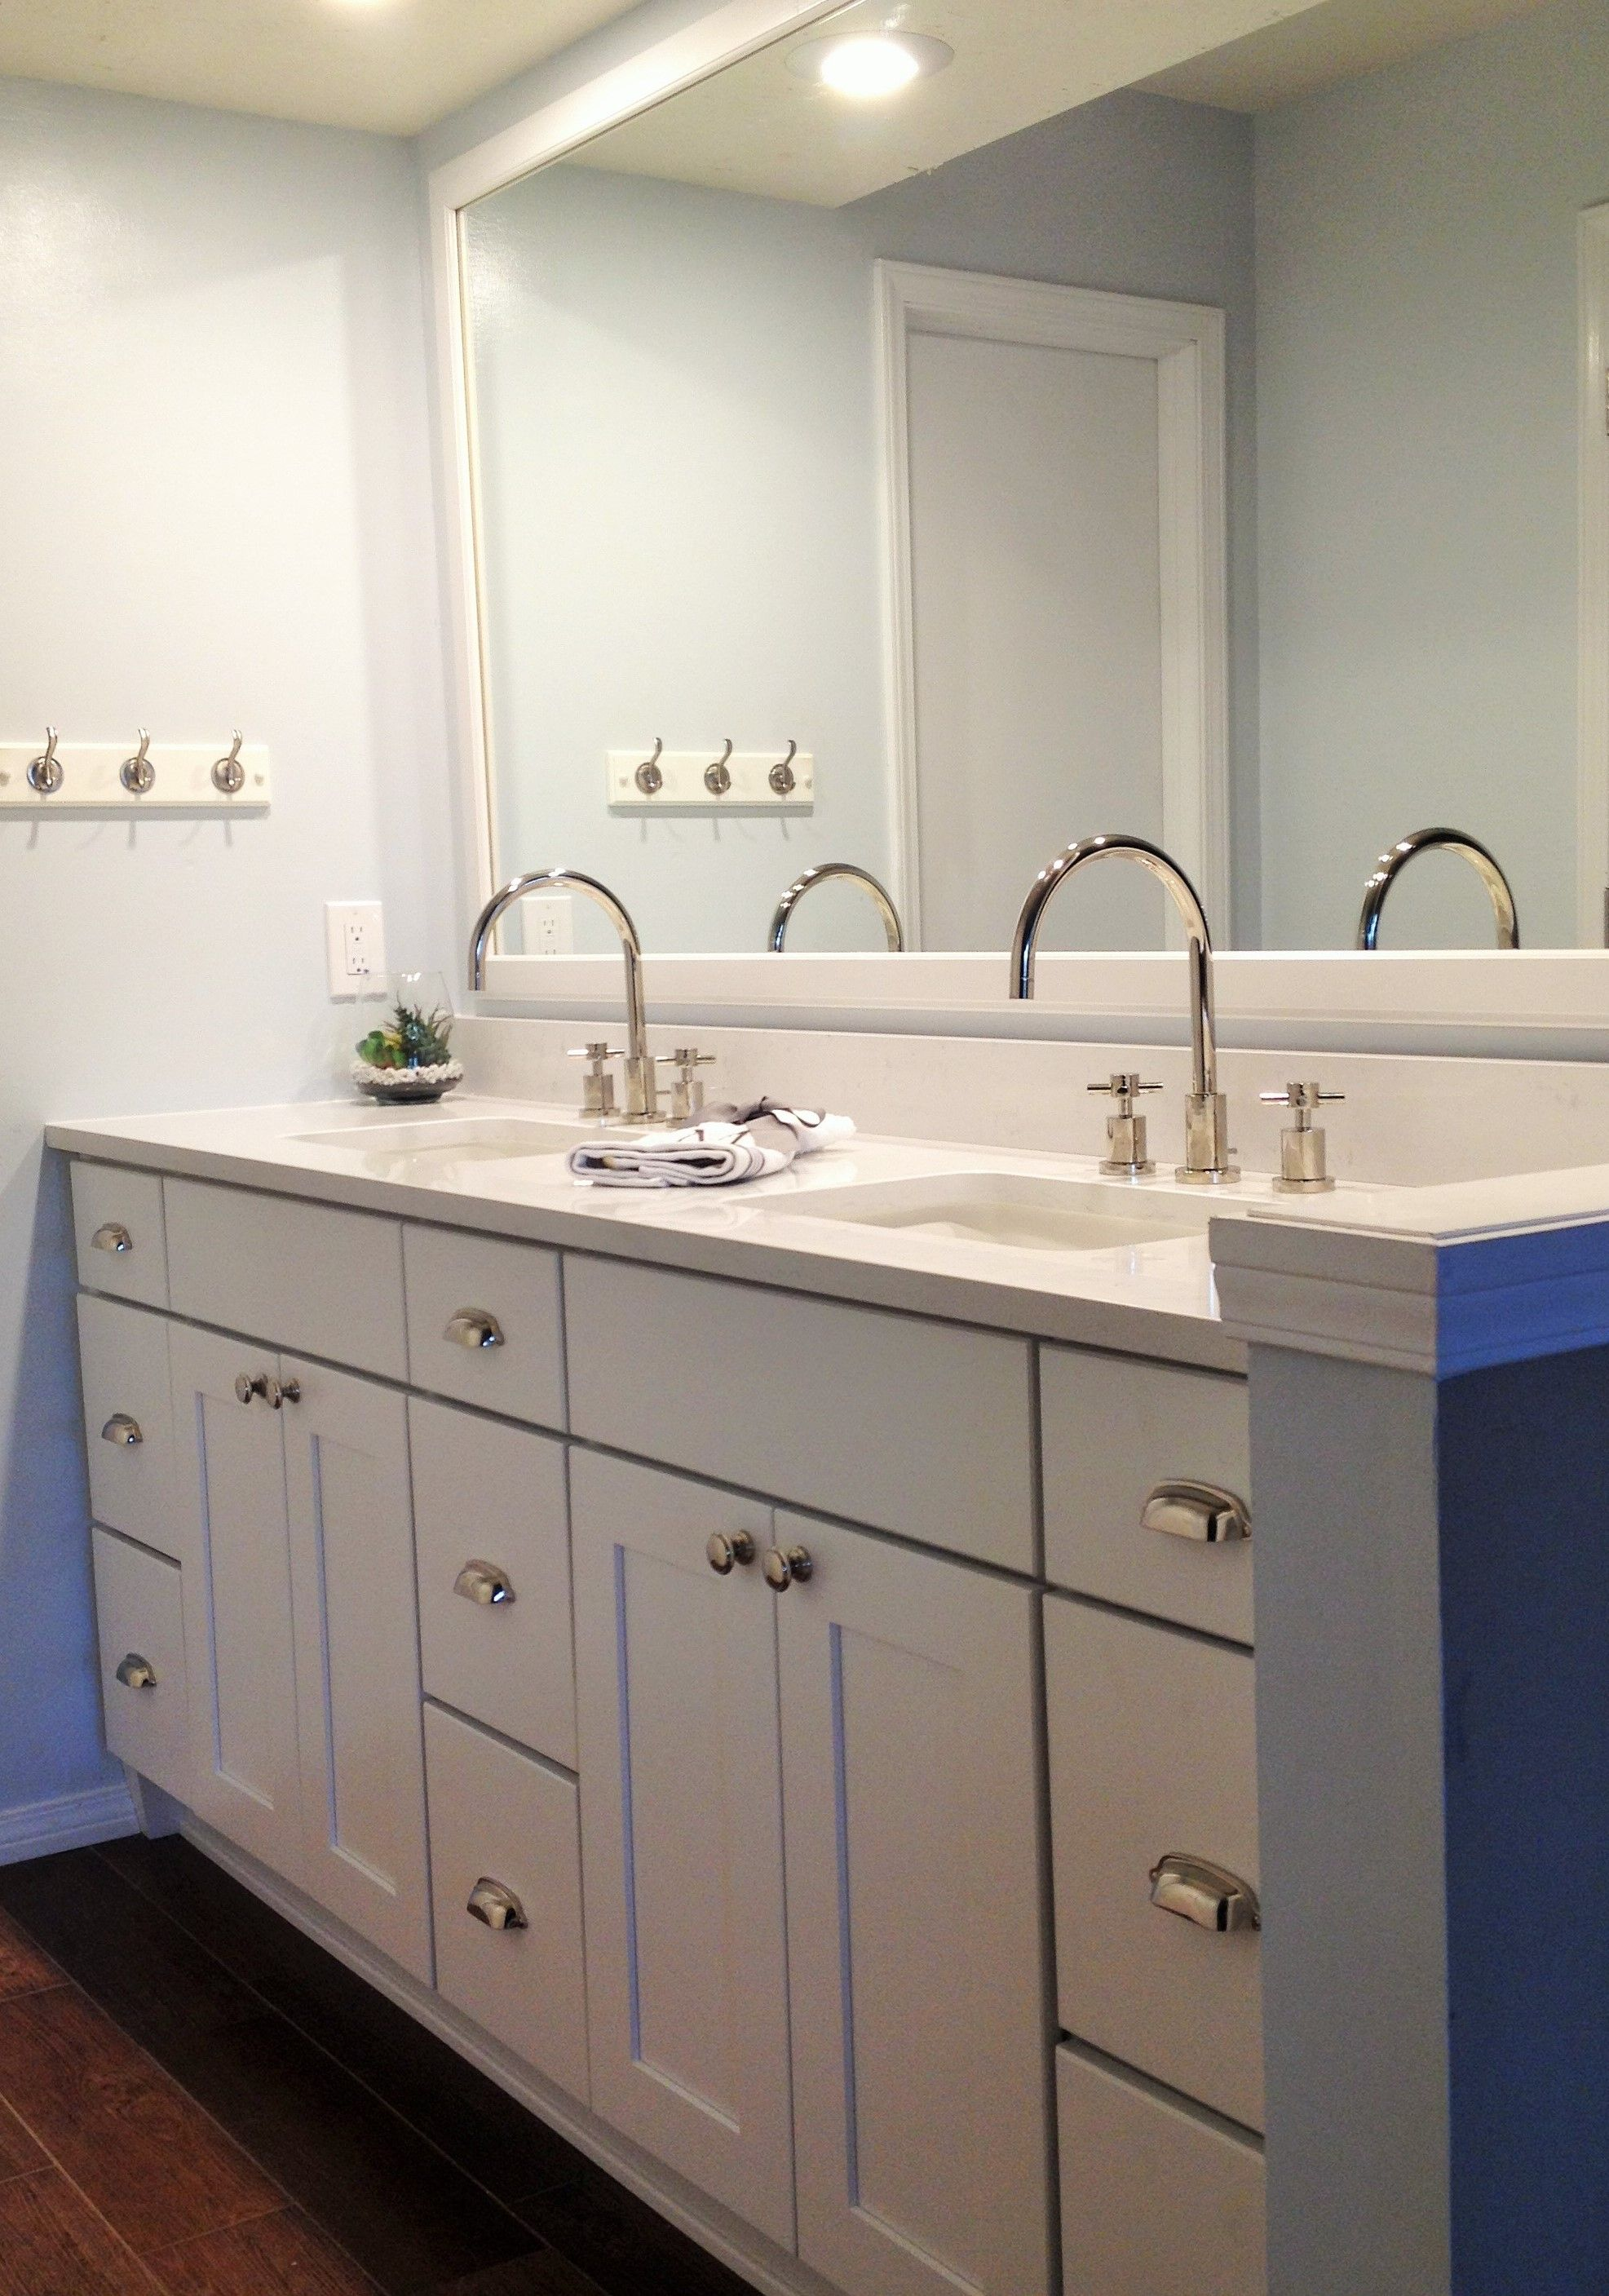 White Shaker Cabinets By Merillat Classic Paired With Chrome